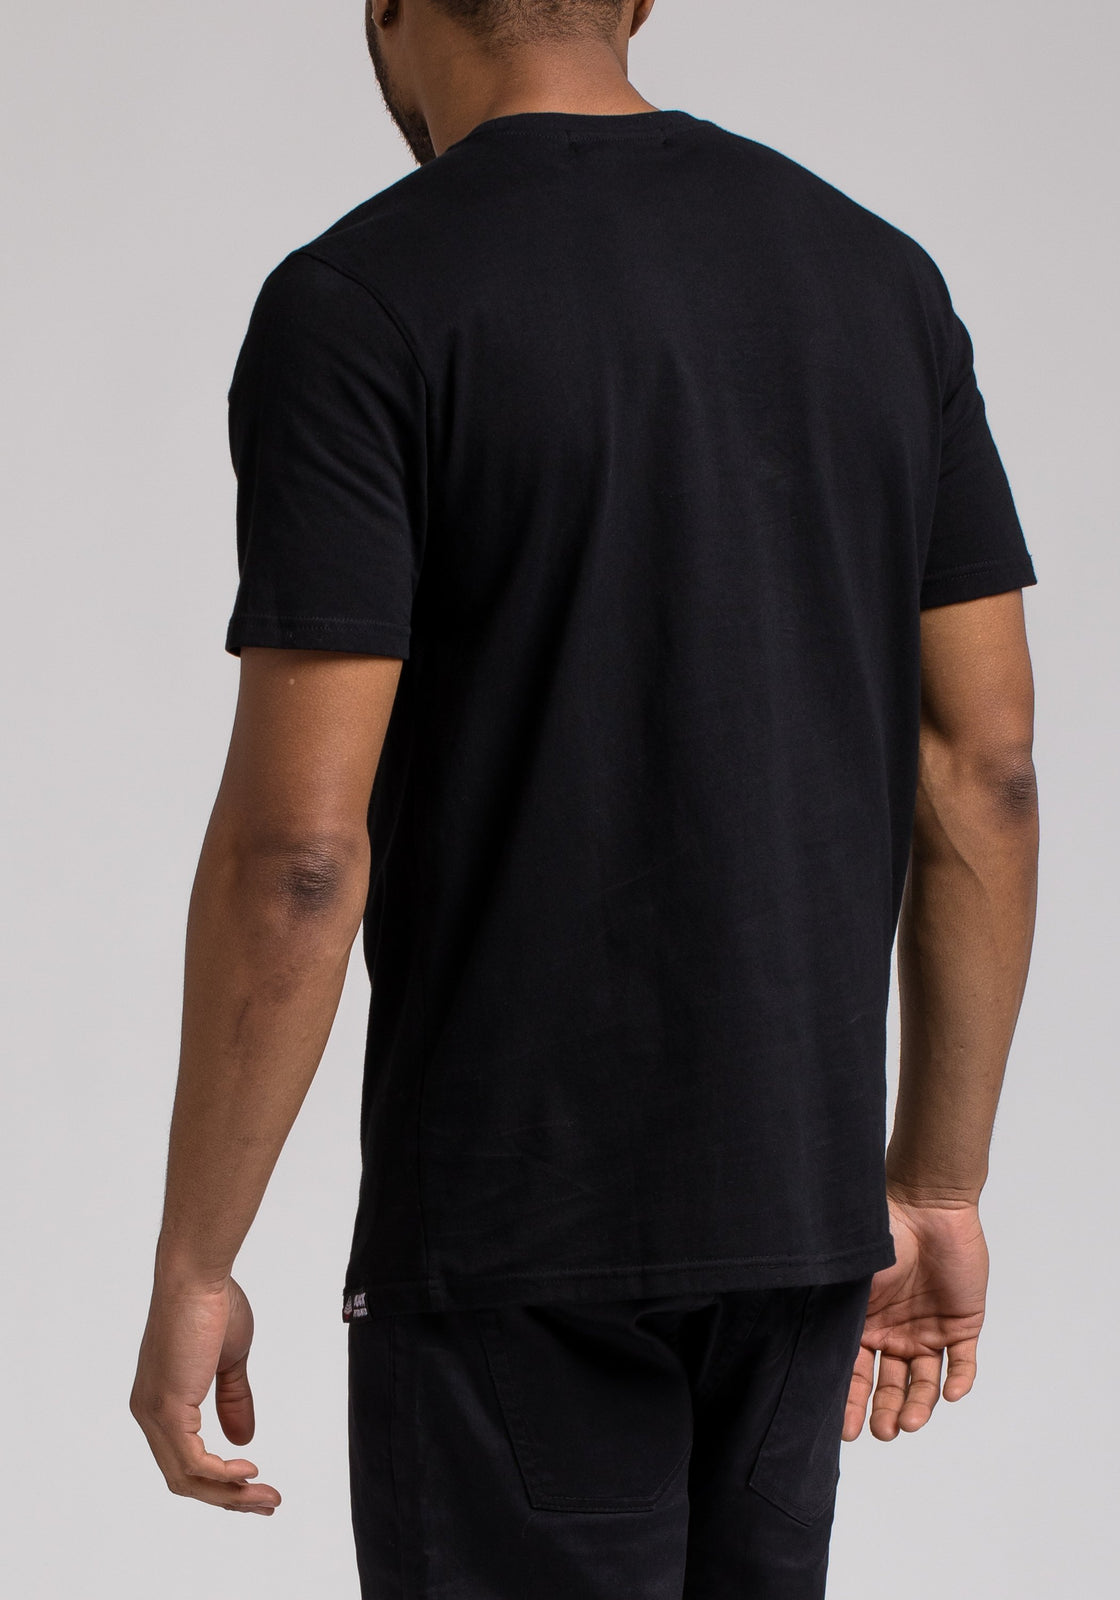 BP PALM SS SHIRT - Color: Black